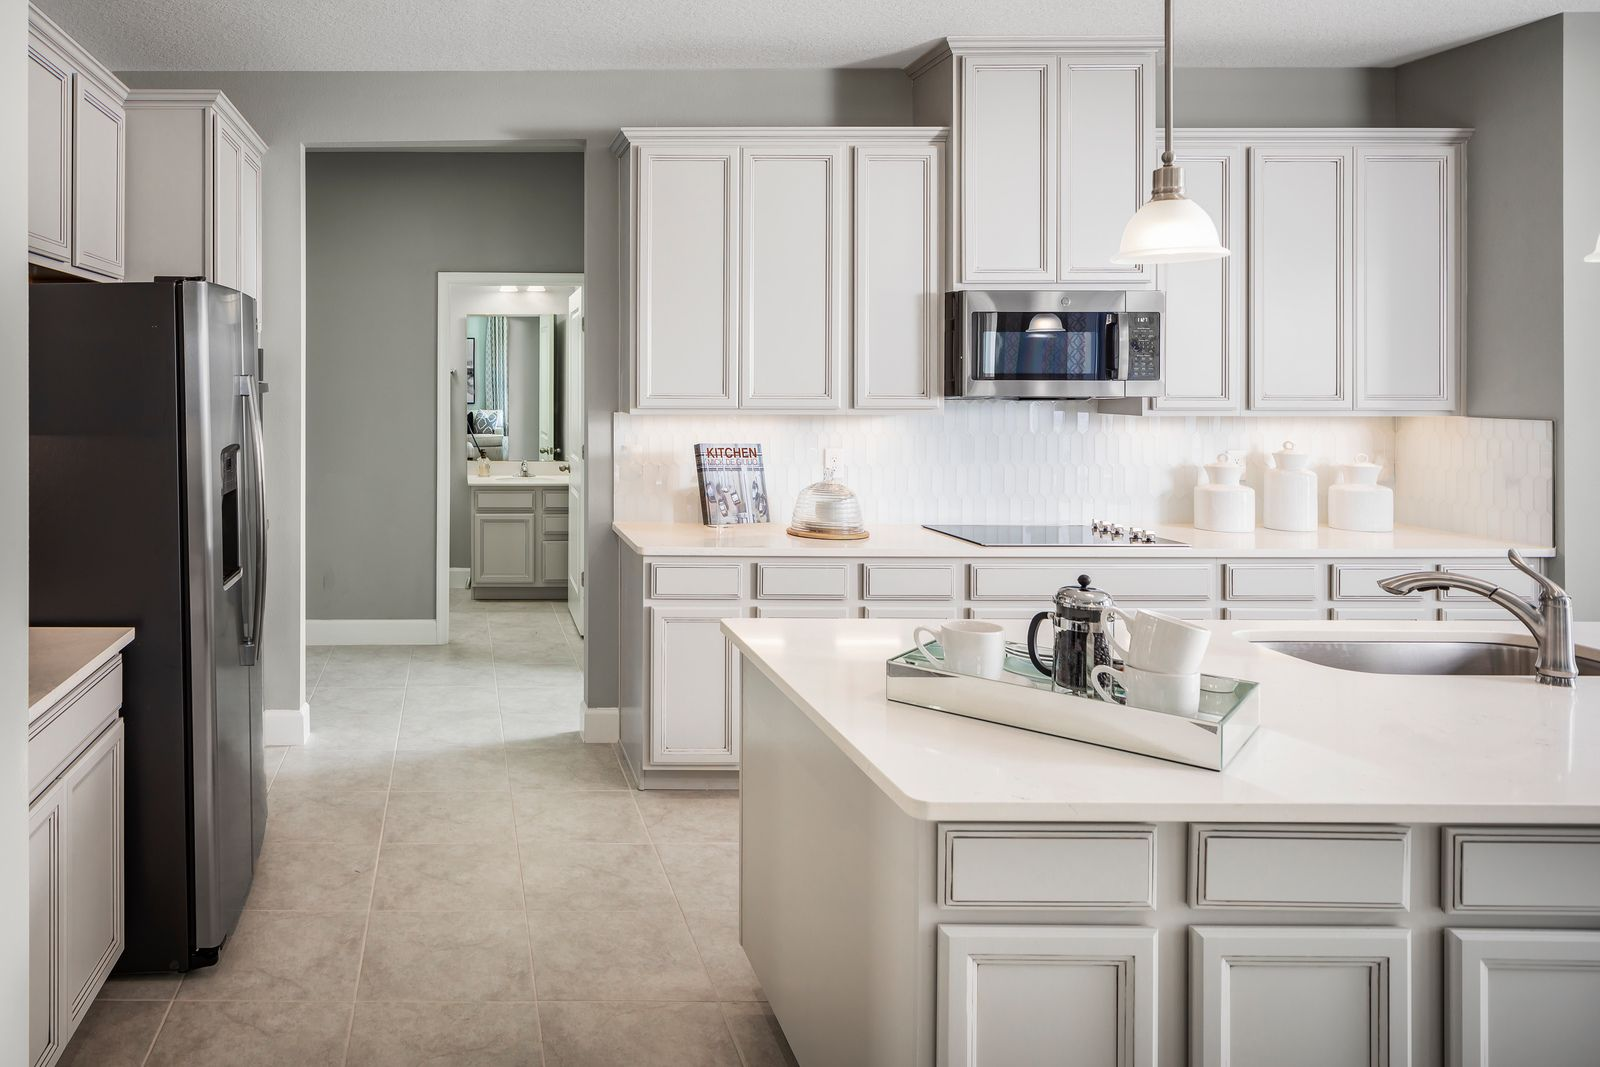 Kitchen featured in the Hadley Bay By Ryan Homes in Orlando, FL